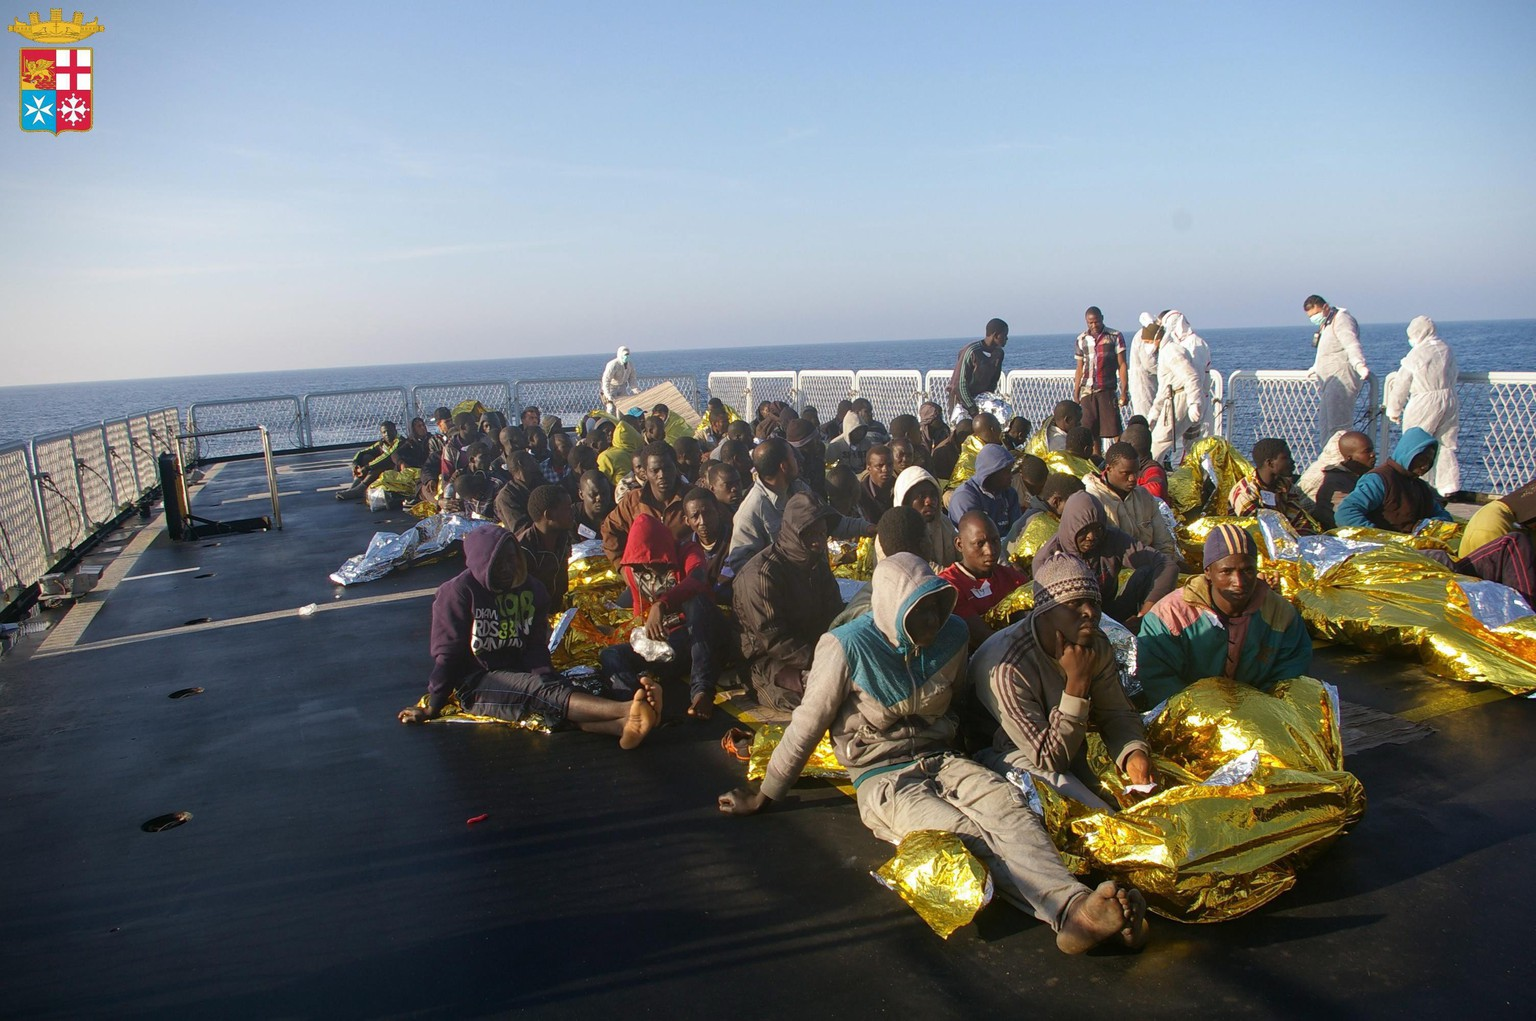 epa04163061 A handout picture provided by the Italian Navy Press Office shows North African immigrants on board a ship after being rescued off the coast of Sicily, southern Italy, 11 April 2014. The Italian navy rescued 800 North African immigrants off the coast of Libya late 10 April in the latest in a string of pick-ups off rickety boats that have been launched like flotillas during the recent spell of warm weather. The migrants were on board seven rust-buckets and large dinghies that were intercepted by four Navy frigates and a Finance Guard motorboat about 70 nautical miles south of the stepping-stone Italian island of Lampedusa, which is closer to Libya than to Sicily. Earlier this week Italy issued a fresh call for help from the European Union after rescuing more than 4,000 migrants in 48 hours.  EPA/ITALIAN NAVY PRESS OFFICE / HANDOUT  HANDOUT EDITORIAL USE ONLY/NO SALES